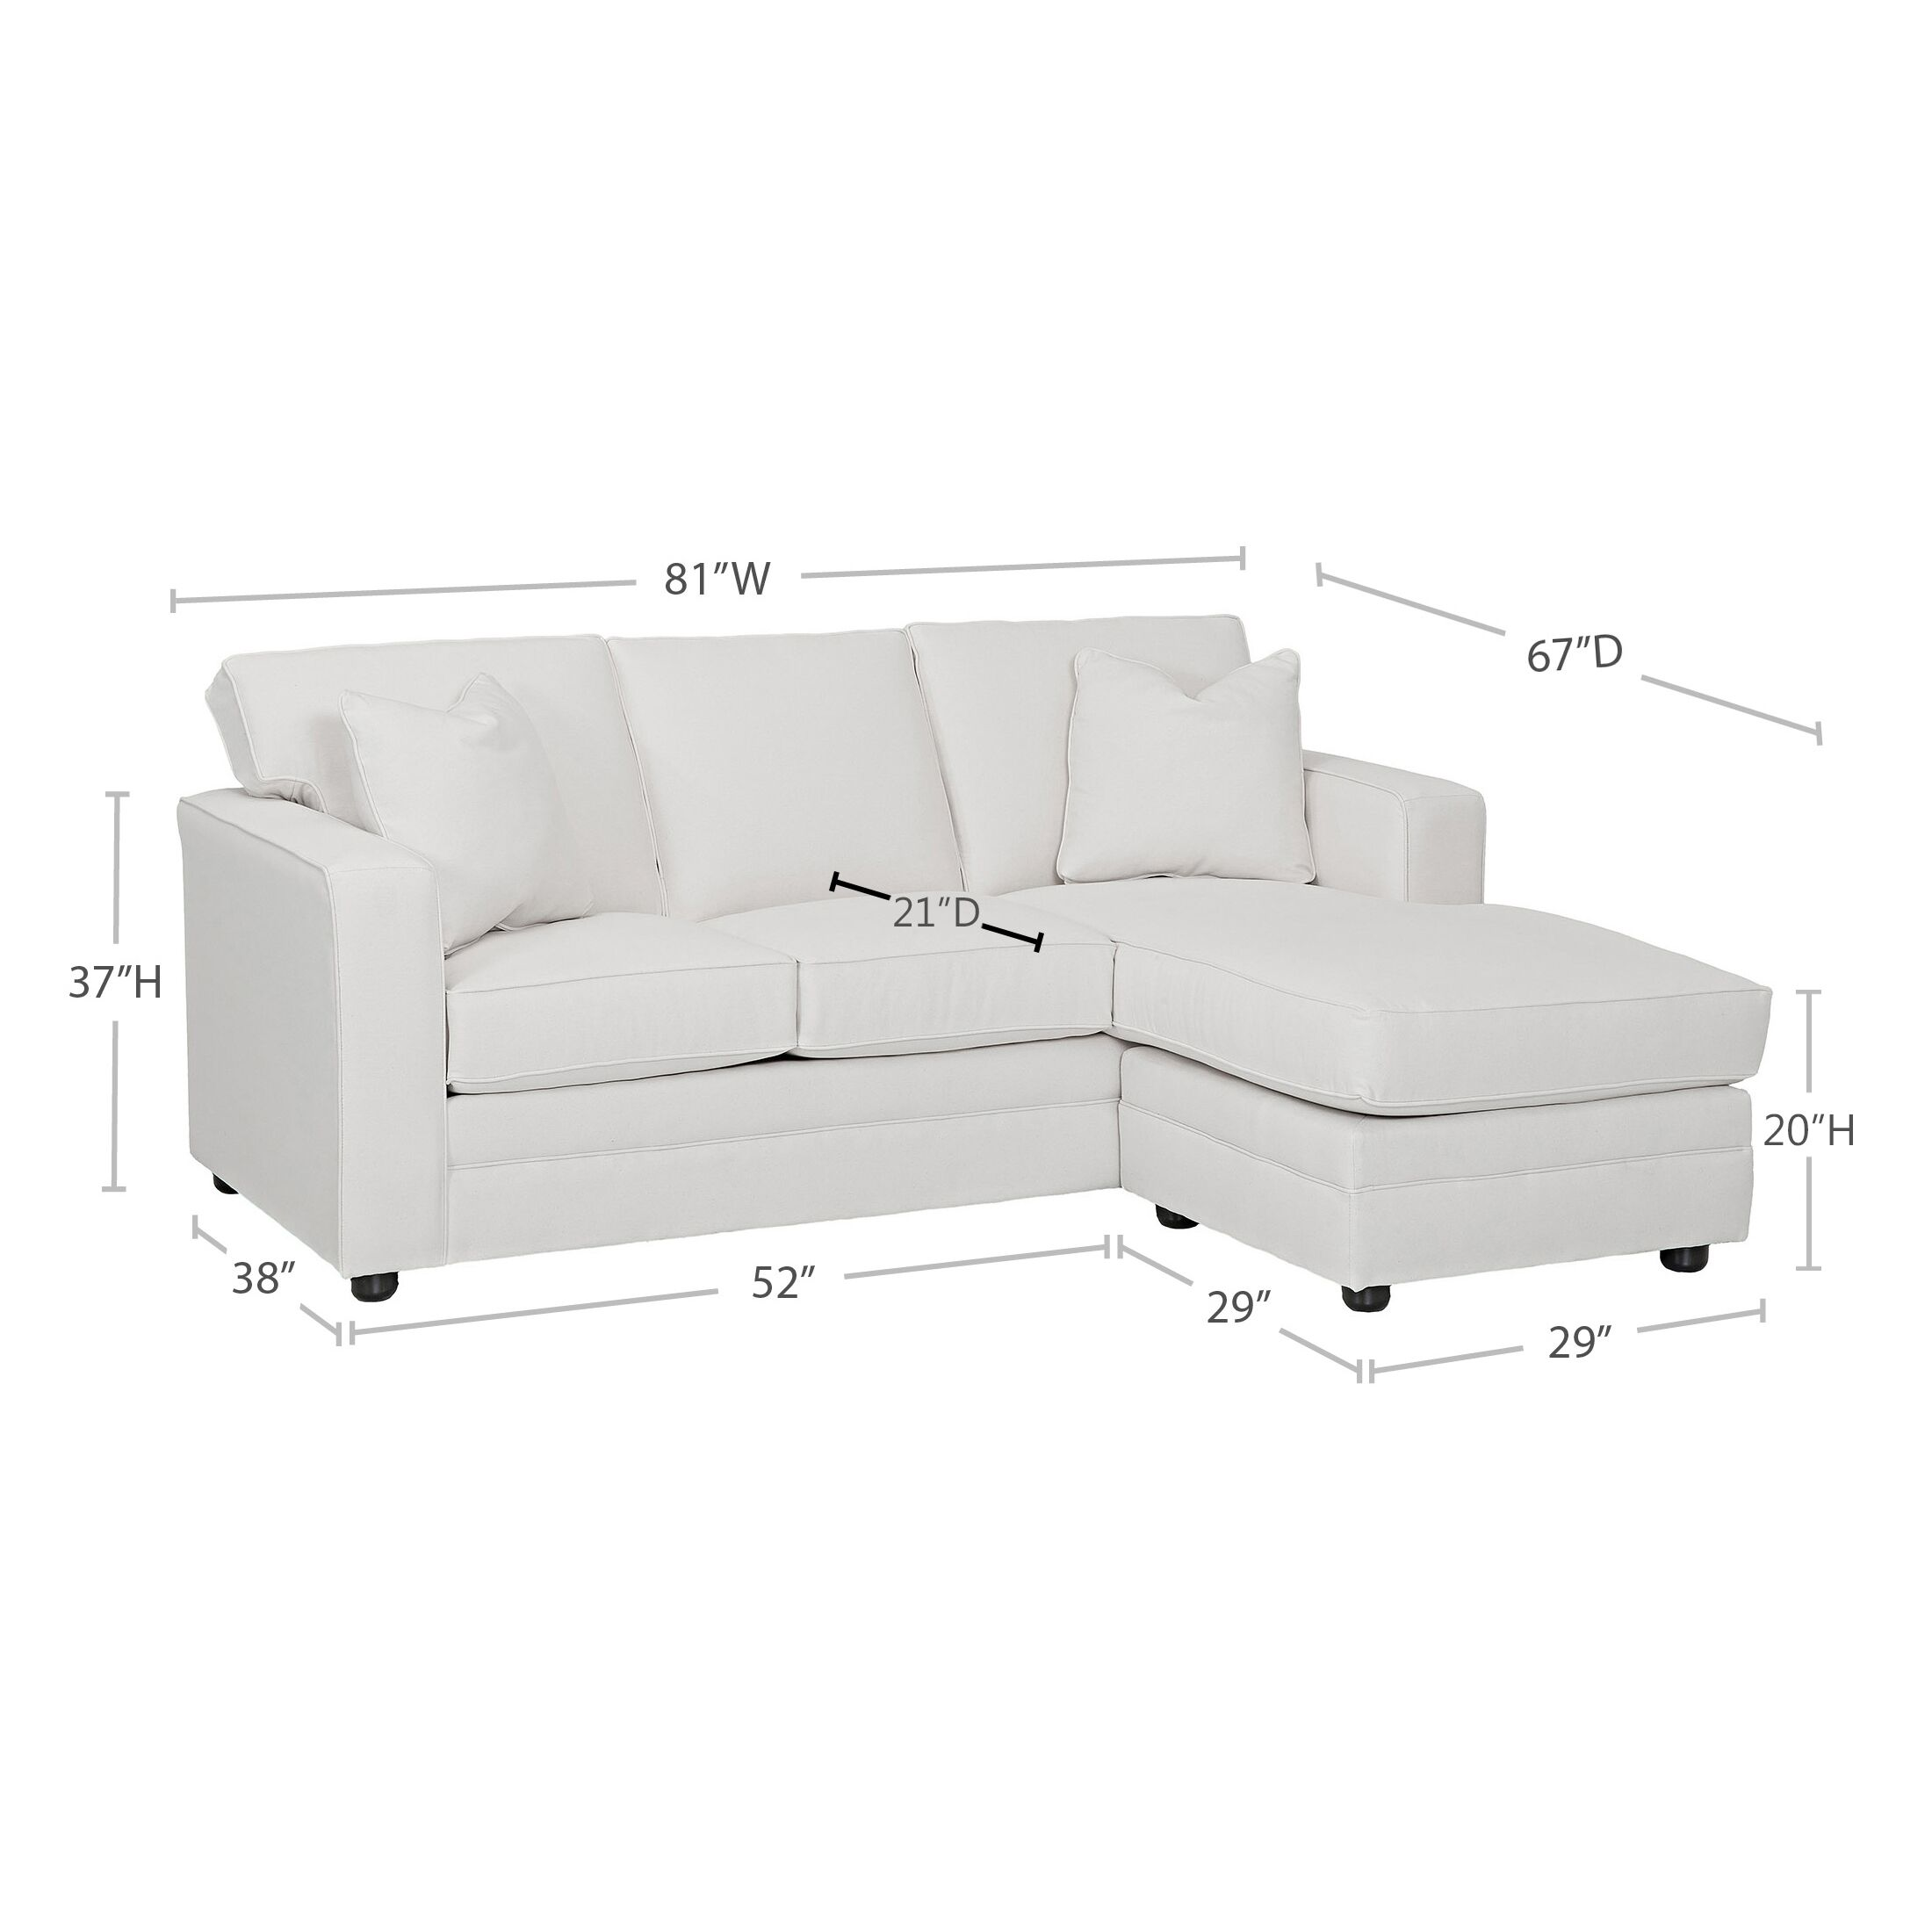 Andrew Reversible Sectional Body Fabric: Spinnsol Indigo, Pillow Fabric: Sunbrella® Canvas Spa, Piping Fabric: Spinnsol Optic White